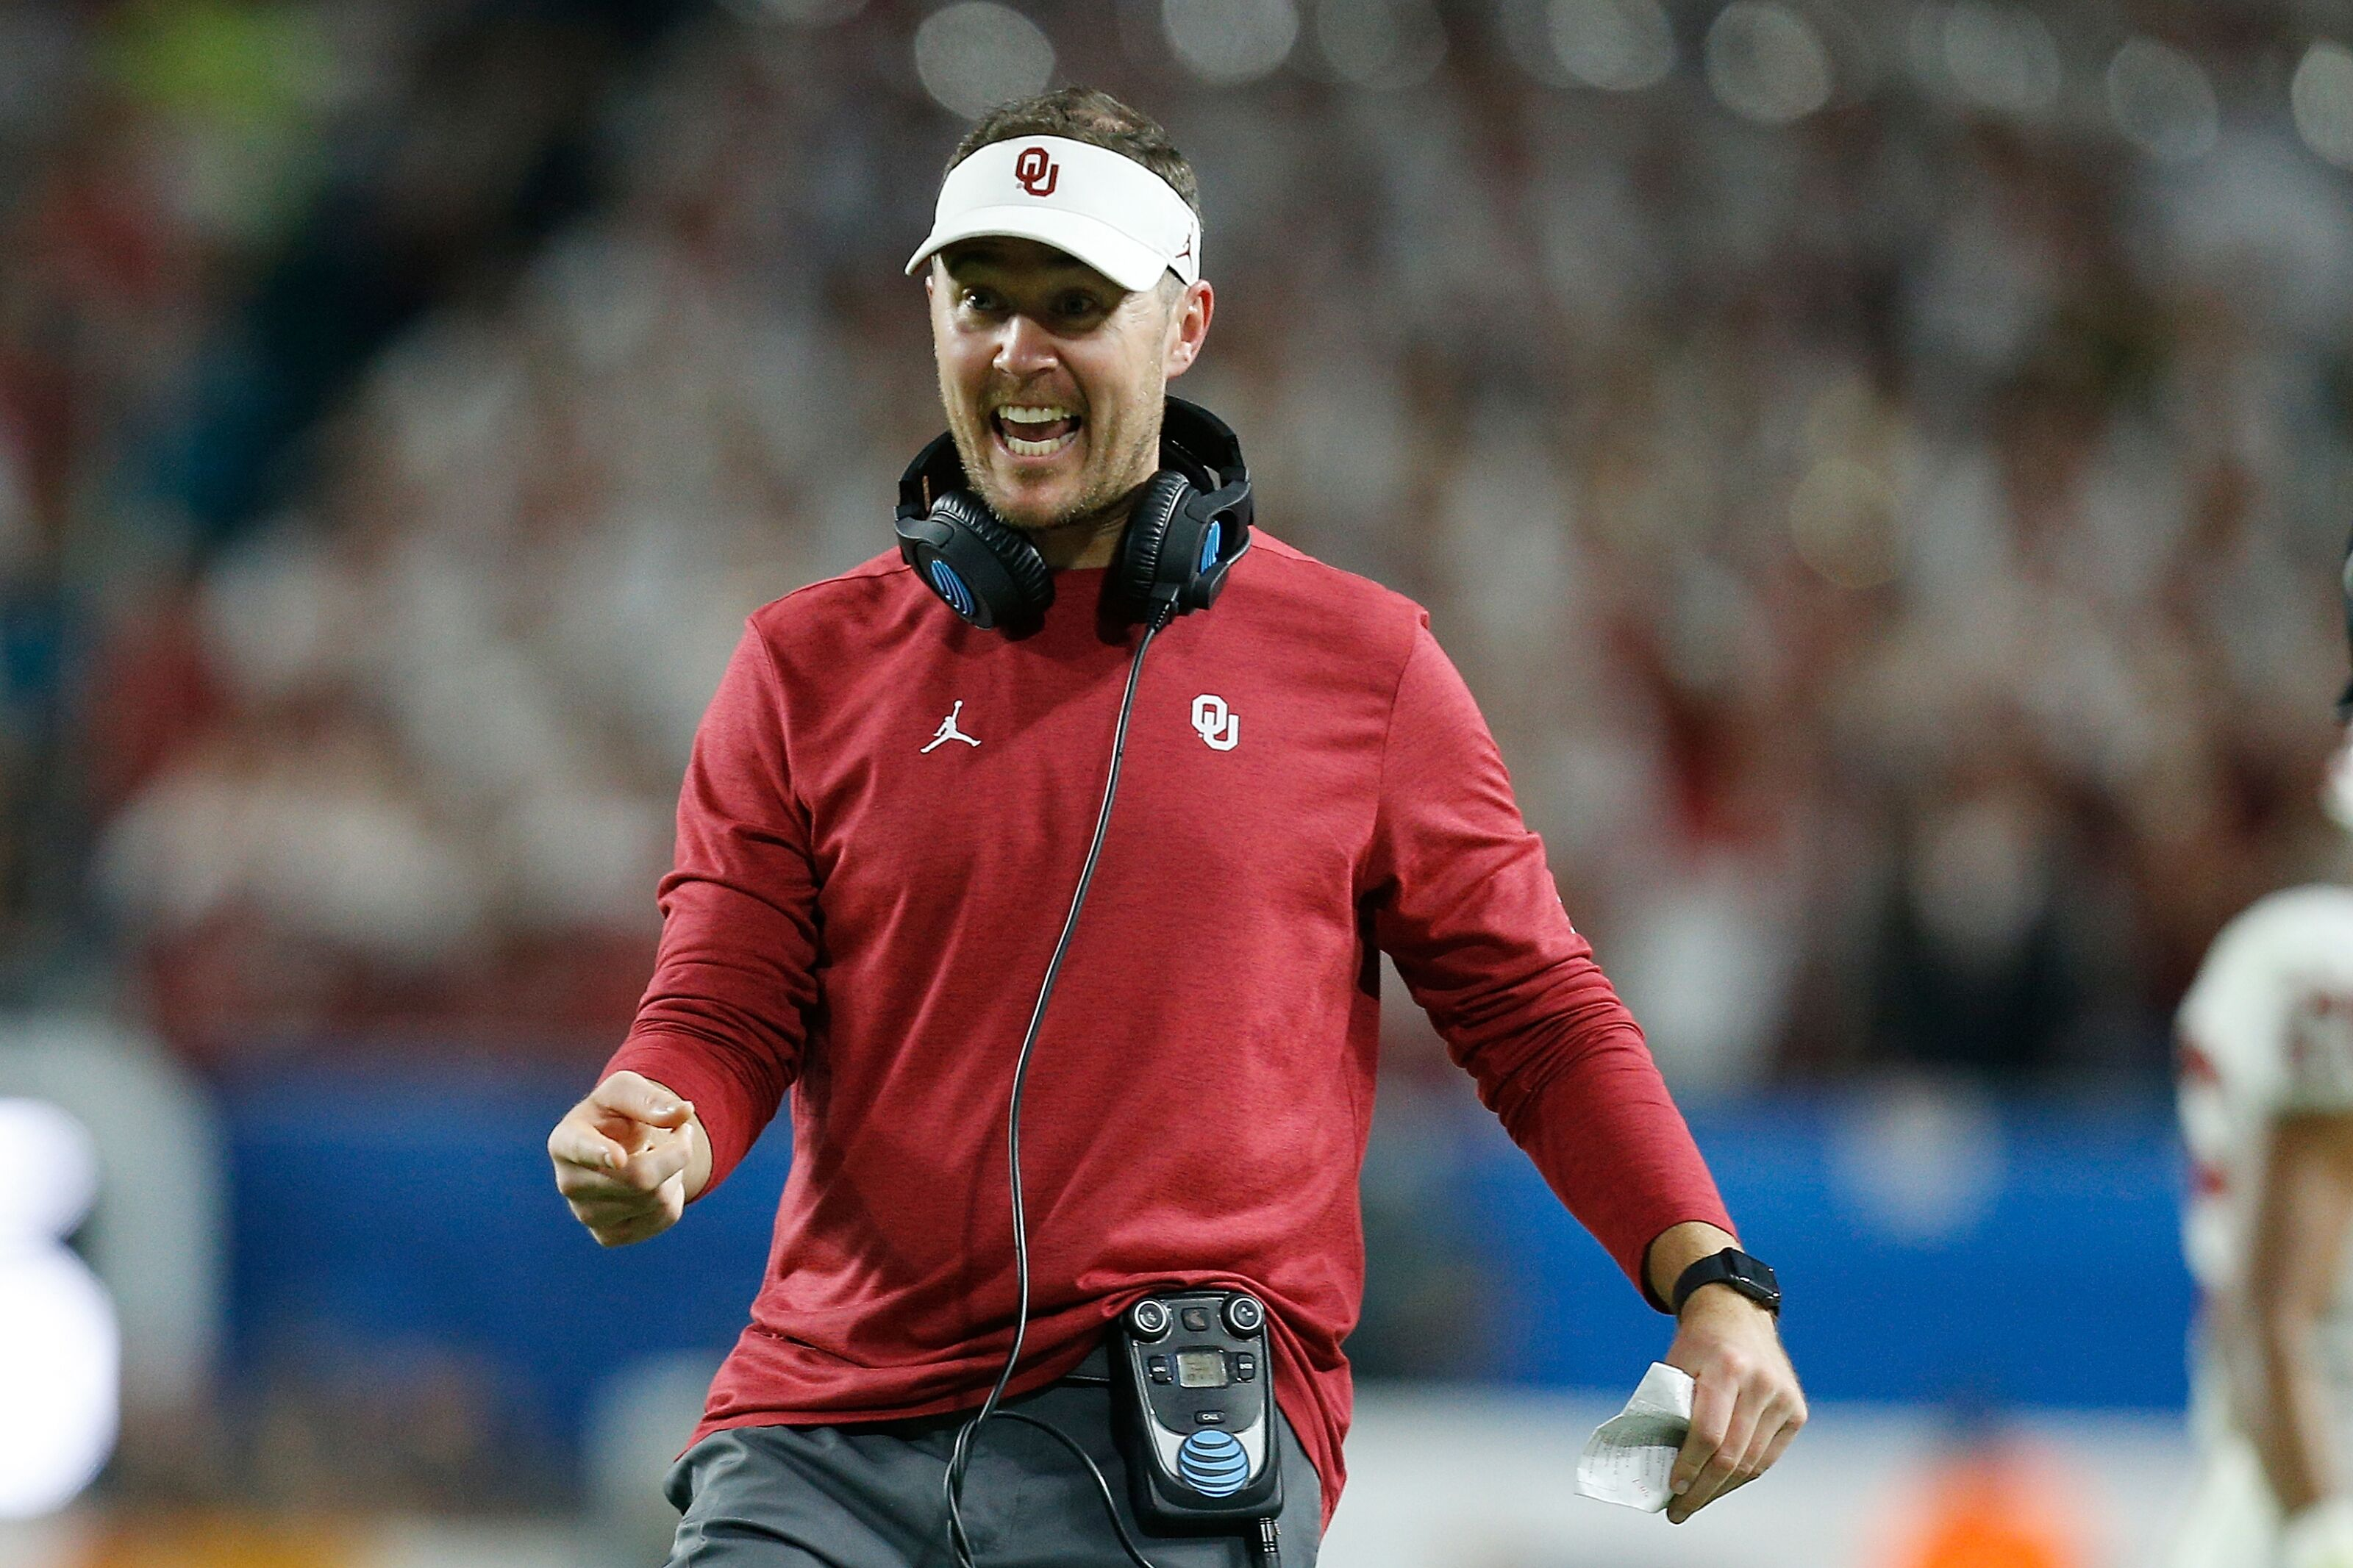 Oklahoma football: Top summer storylines for OU